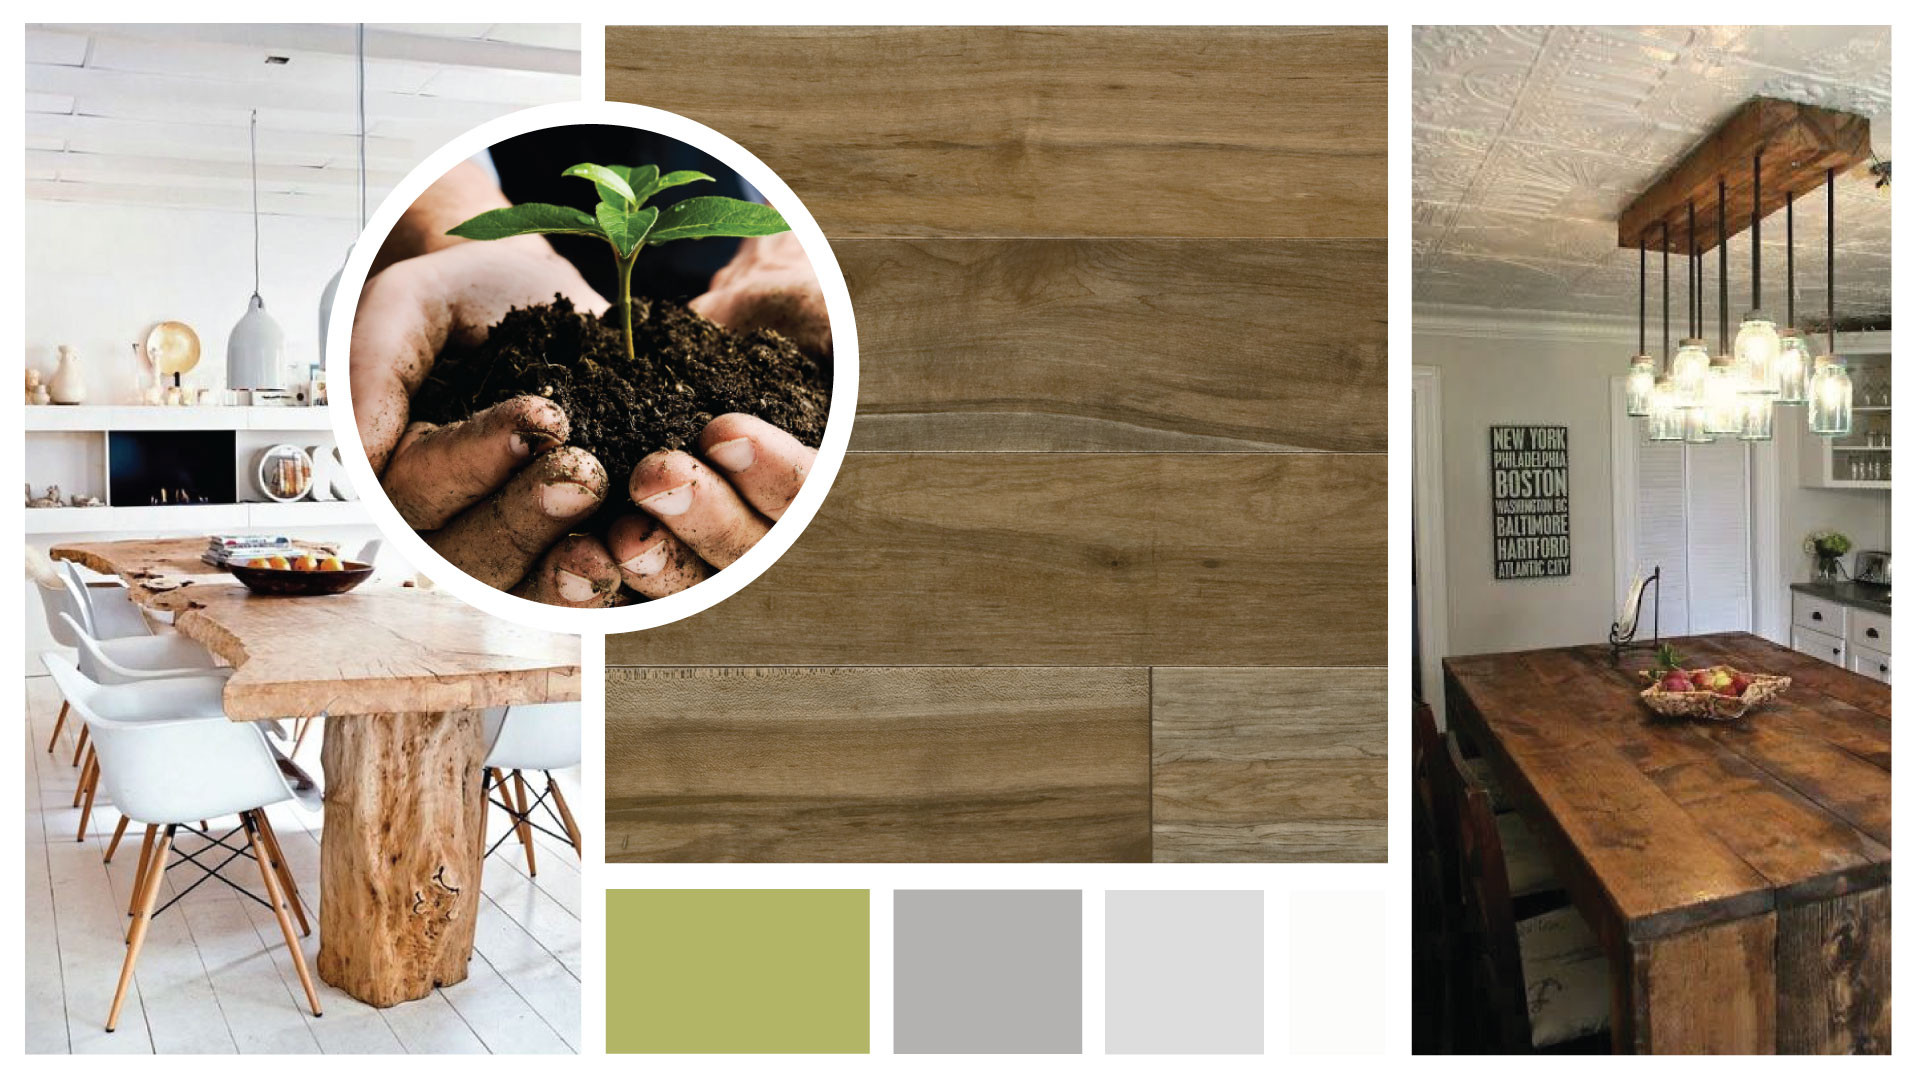 Maple Hardwood Flooring Canada Of 4 Latest Hardwood Flooring Trends Lauzon Flooring for In Addition to Being Locally sourced Our Floors are Produced with Our Breakthrough Eco Friendly Process at Lauzon Green isnt Just A Color